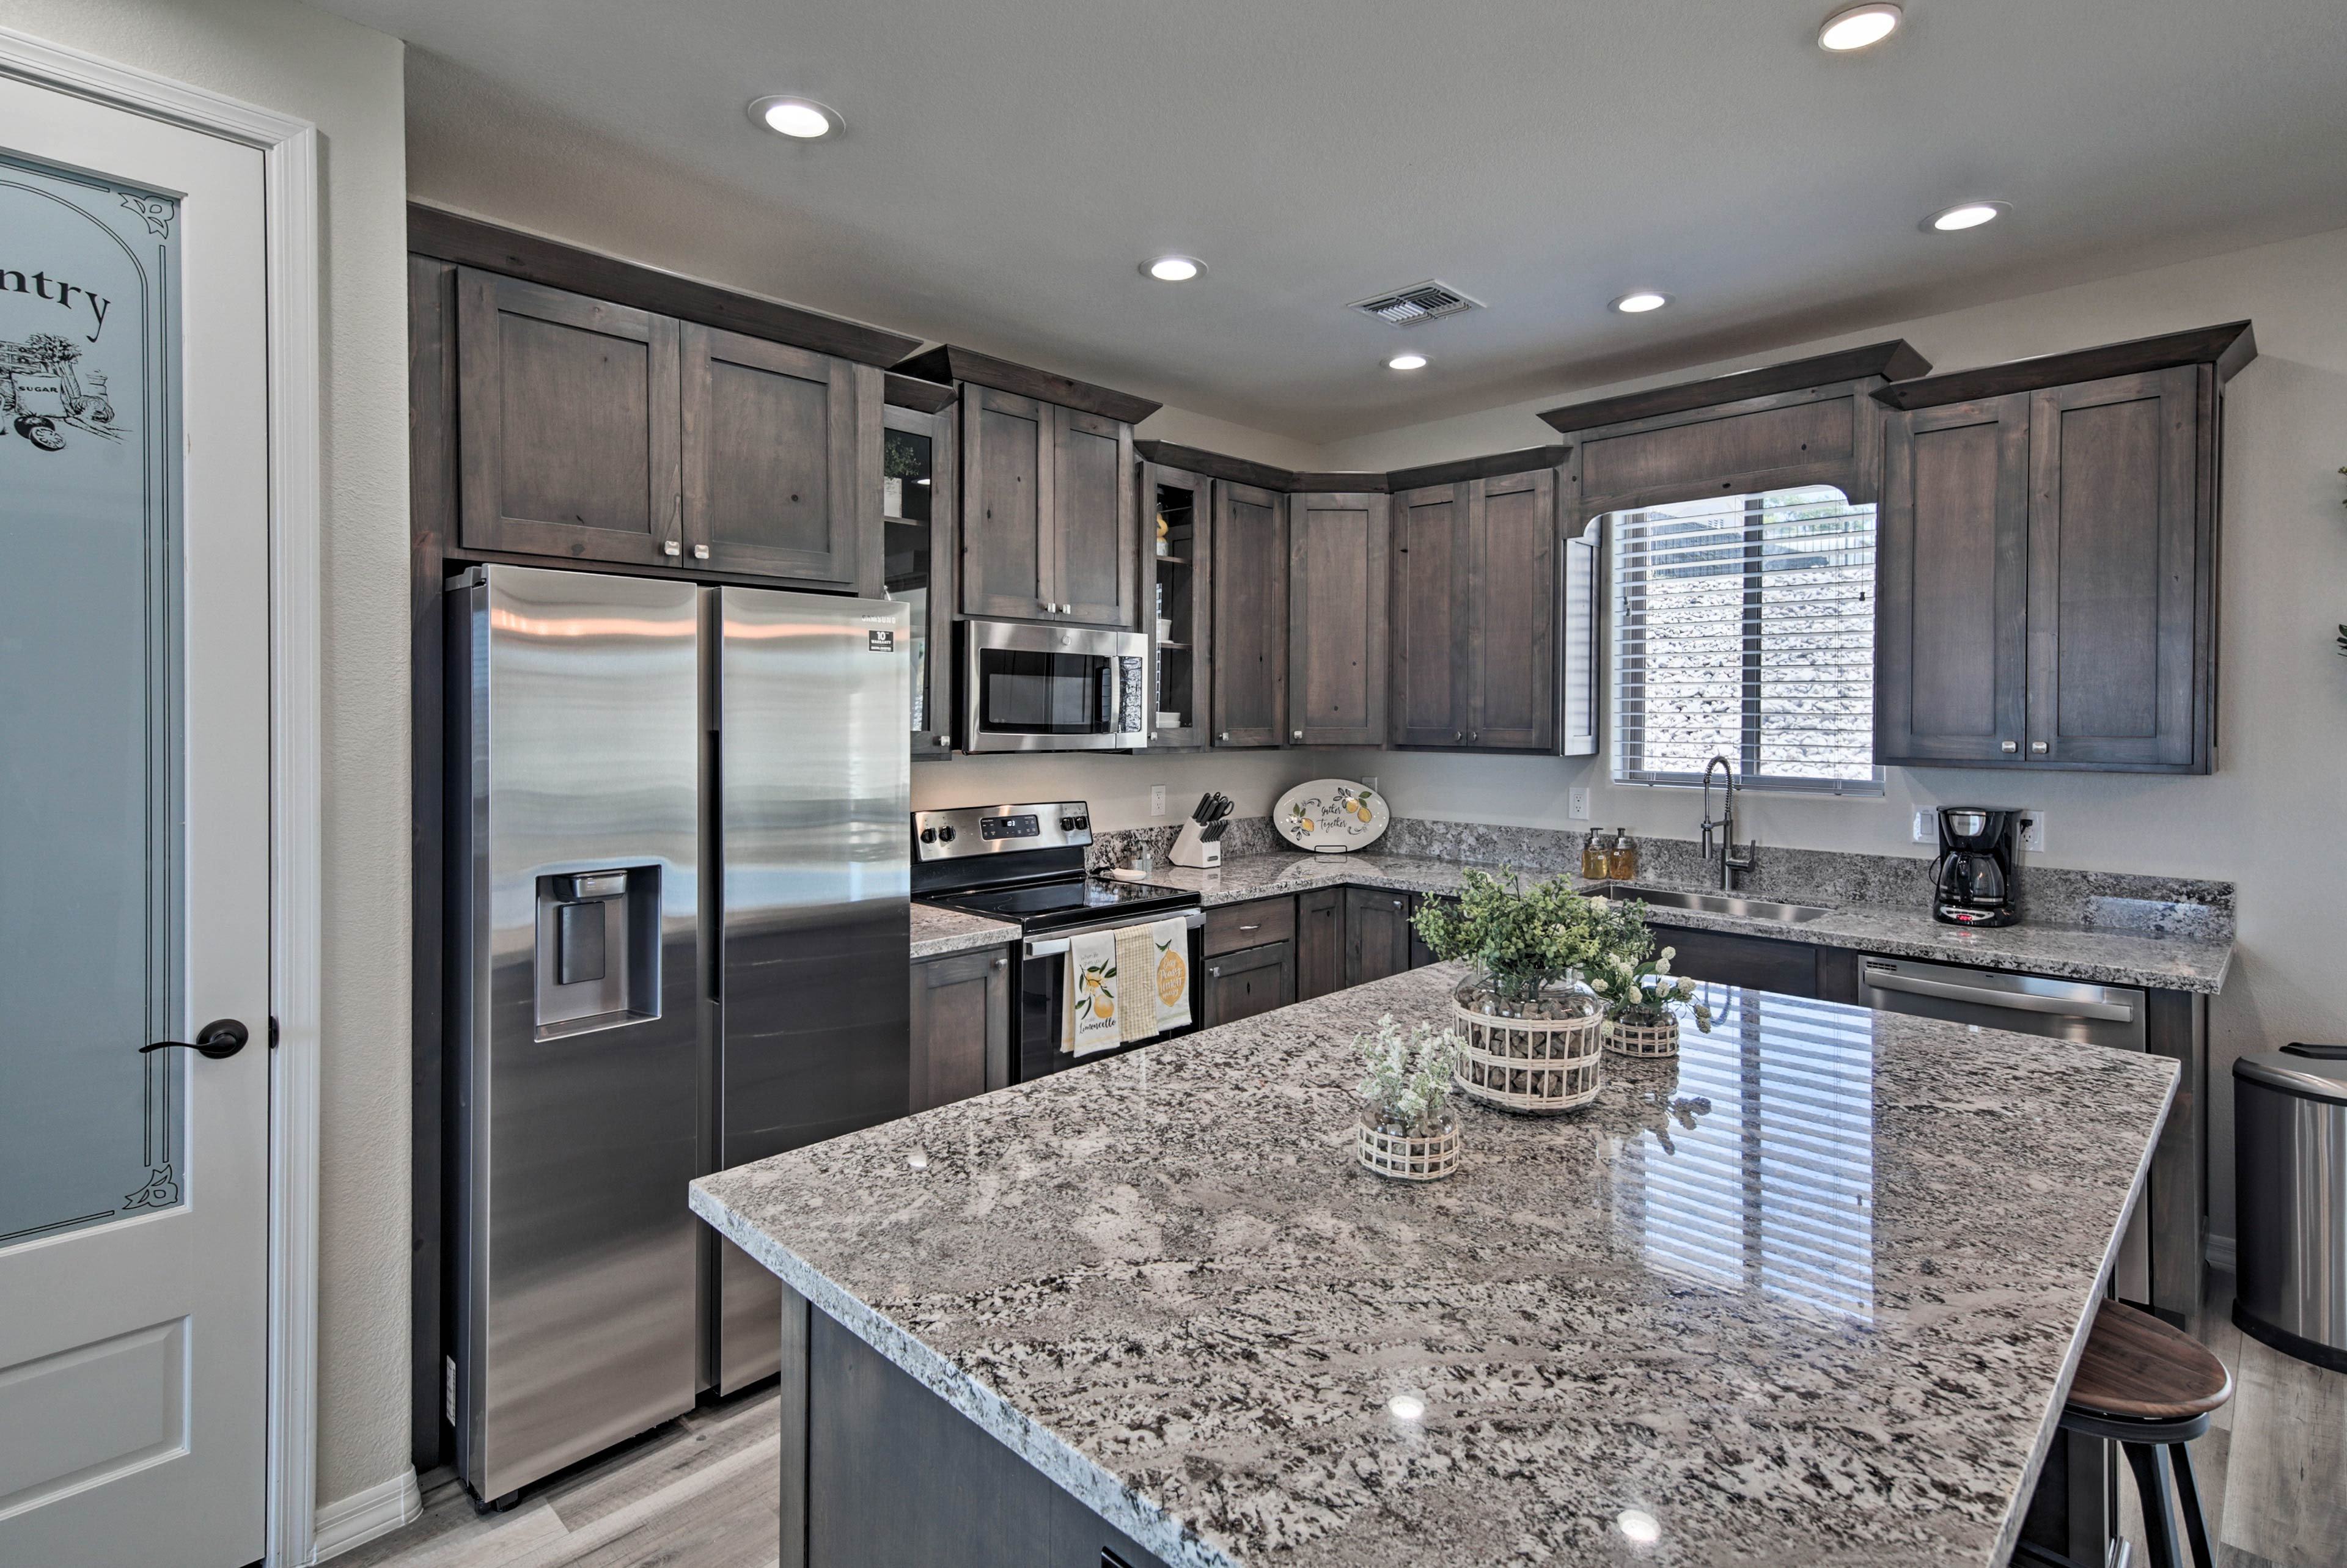 This modern kitchen has stainless steel appliances and granite countertops.